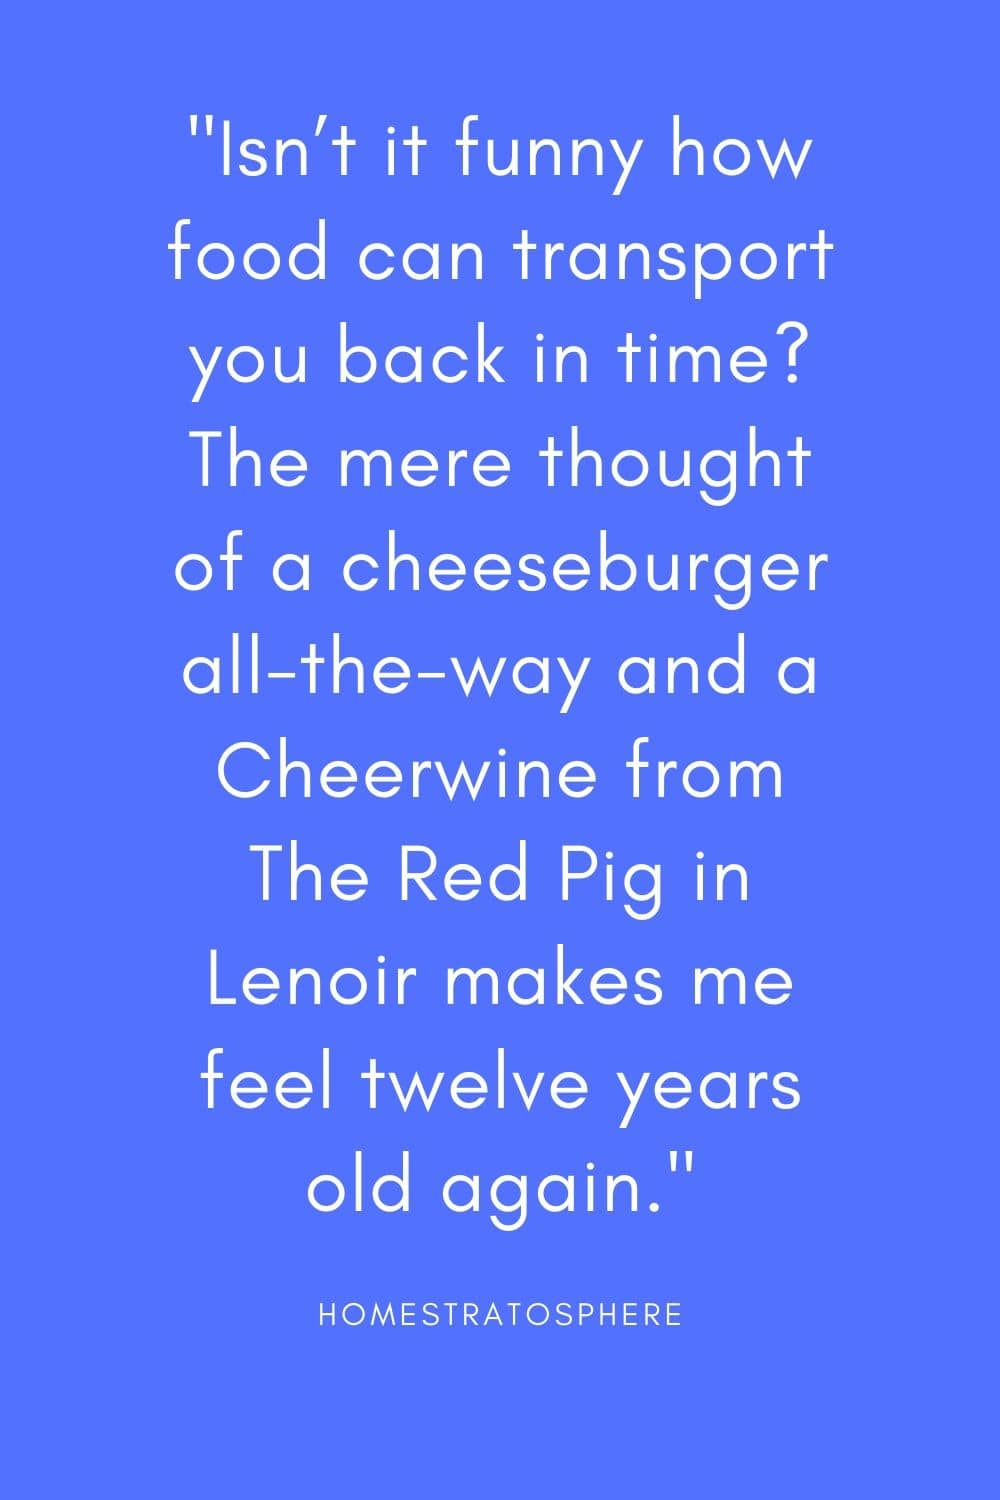 """Isn't it funny how food can transport you back in time? The mere thought of a cheeseburger all-the-way and a Cheerwine from The Red Pig in Lenoir makes me feel twelve years old again."""